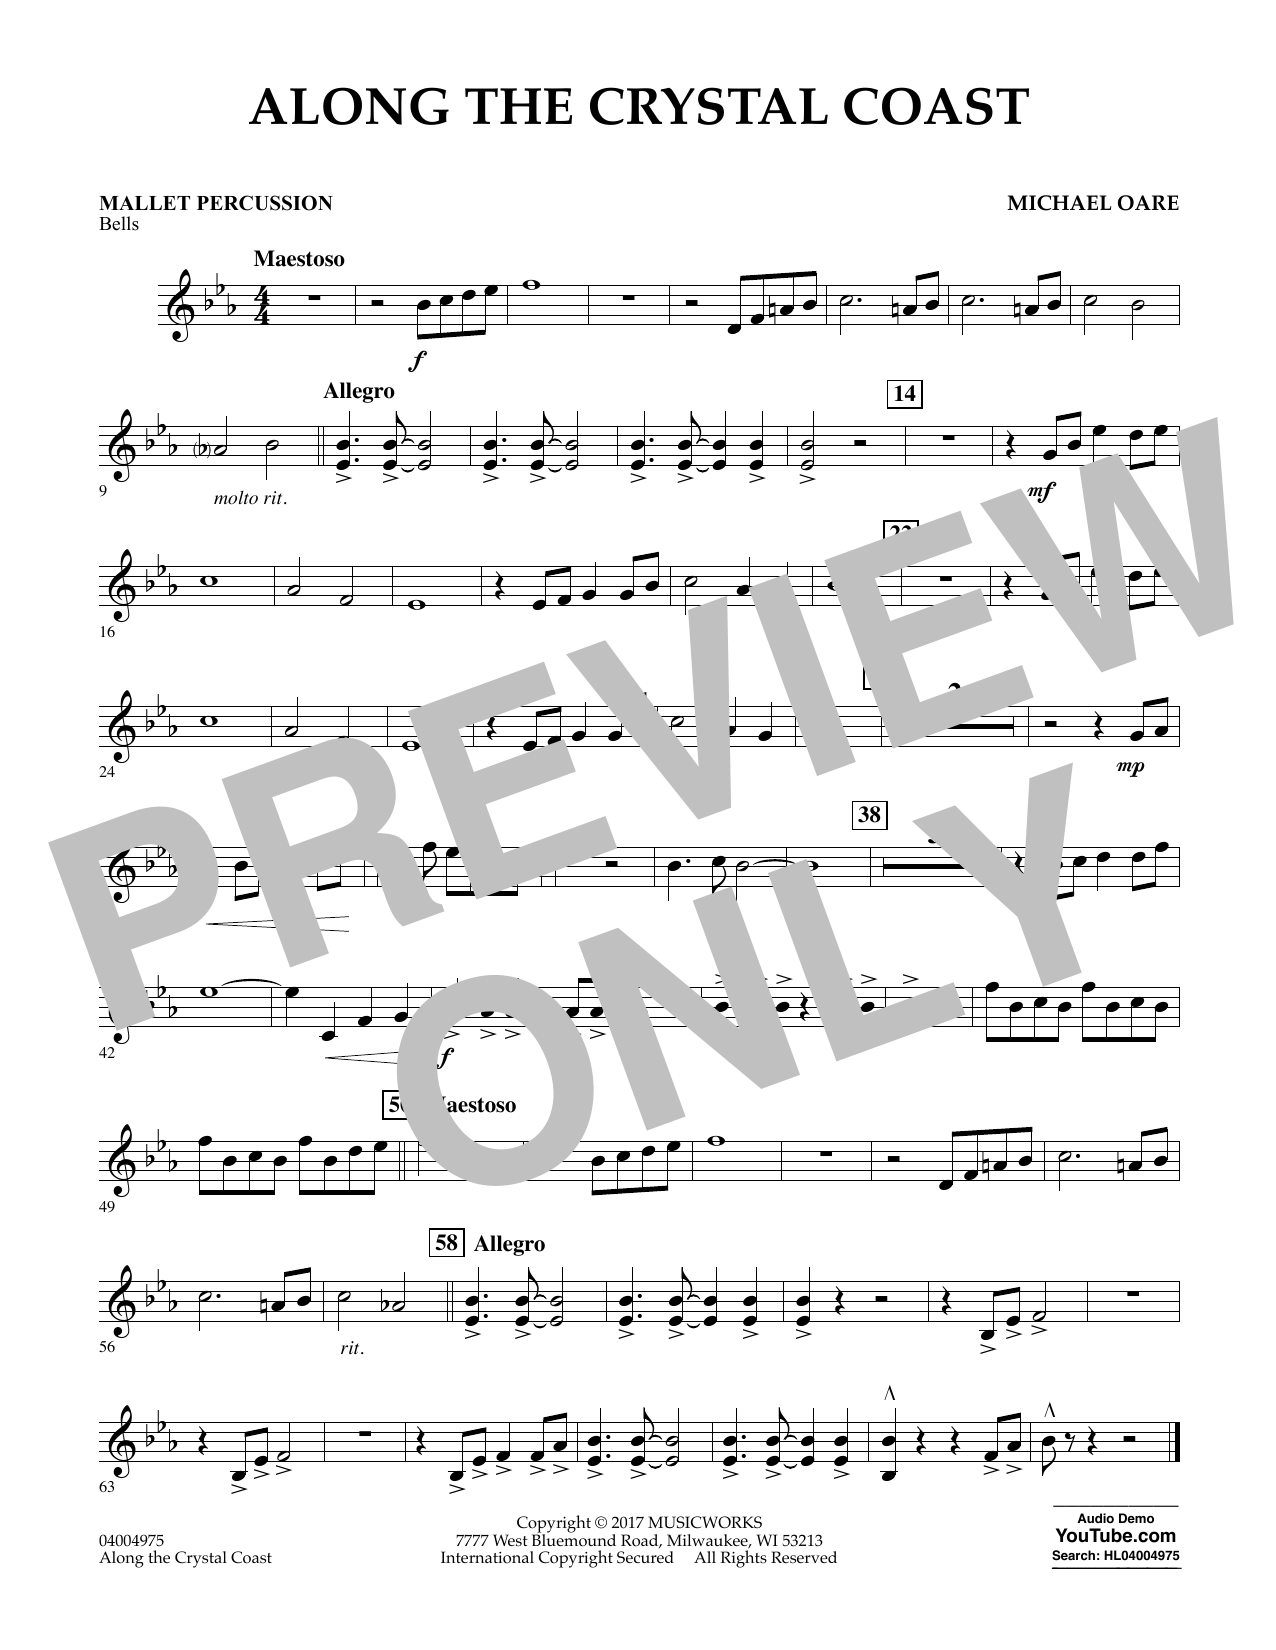 Along the Crystal Coast - Mallet Percussion Sheet Music